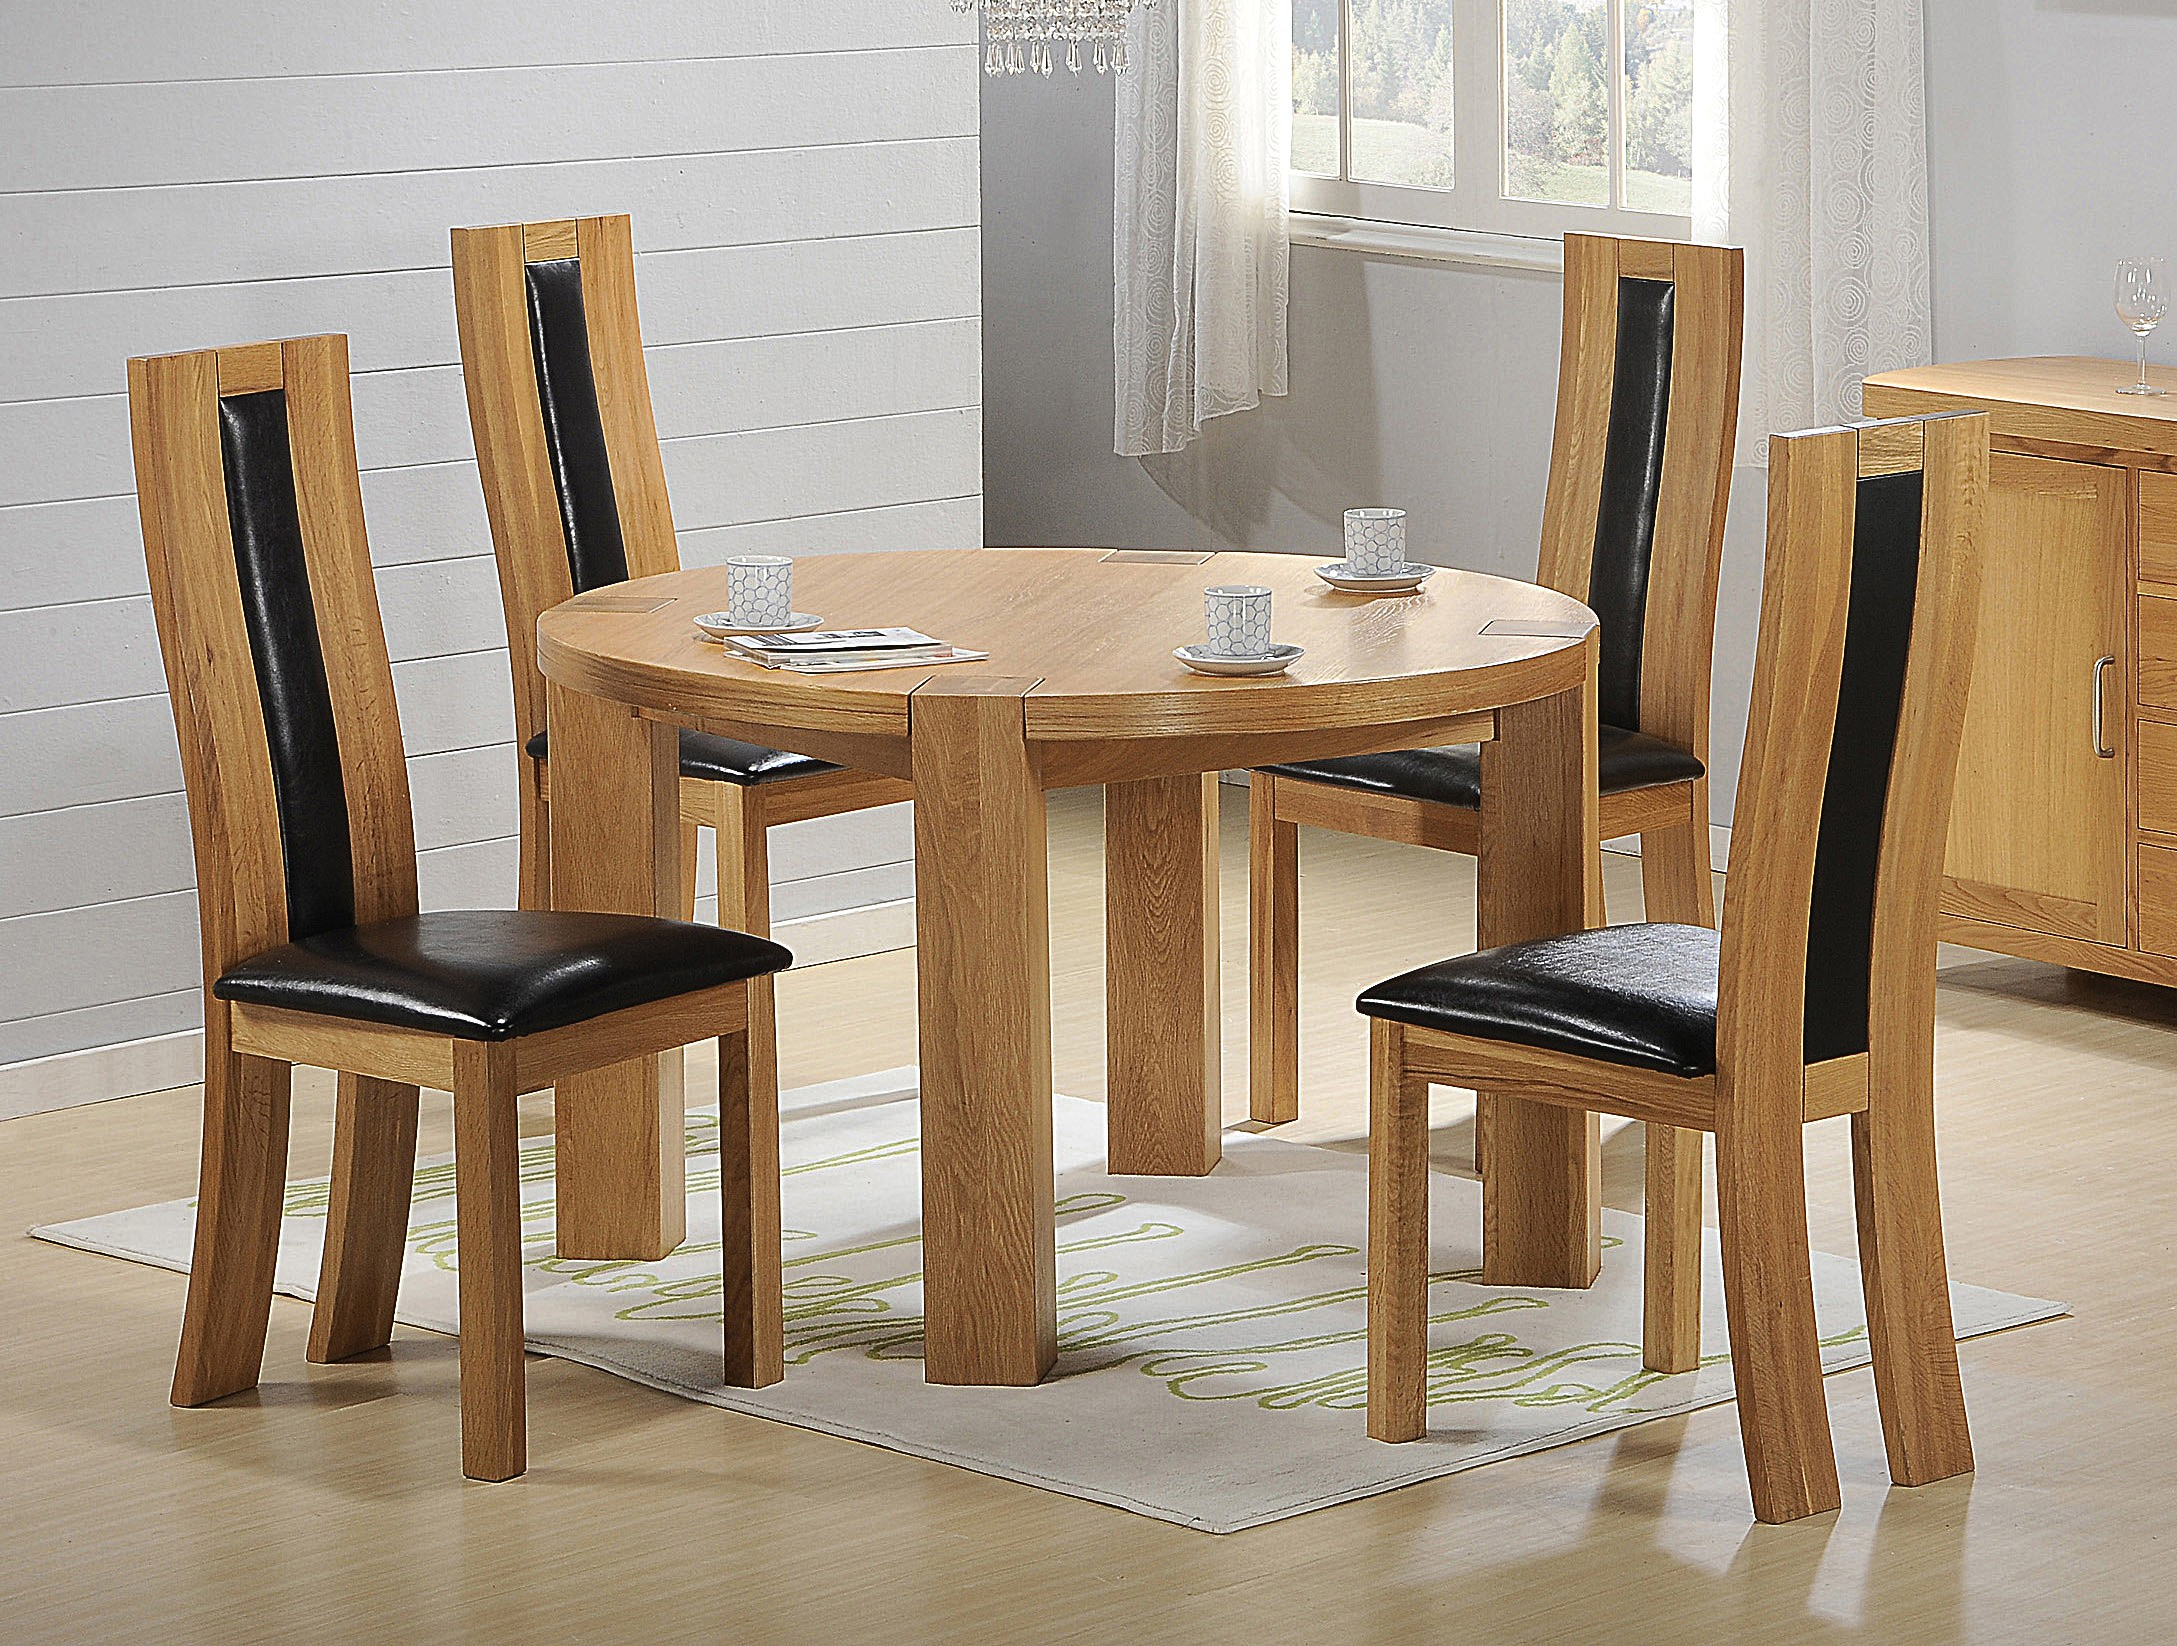 100% Oak Zeus Round Dining Set Oak 4 Chairs